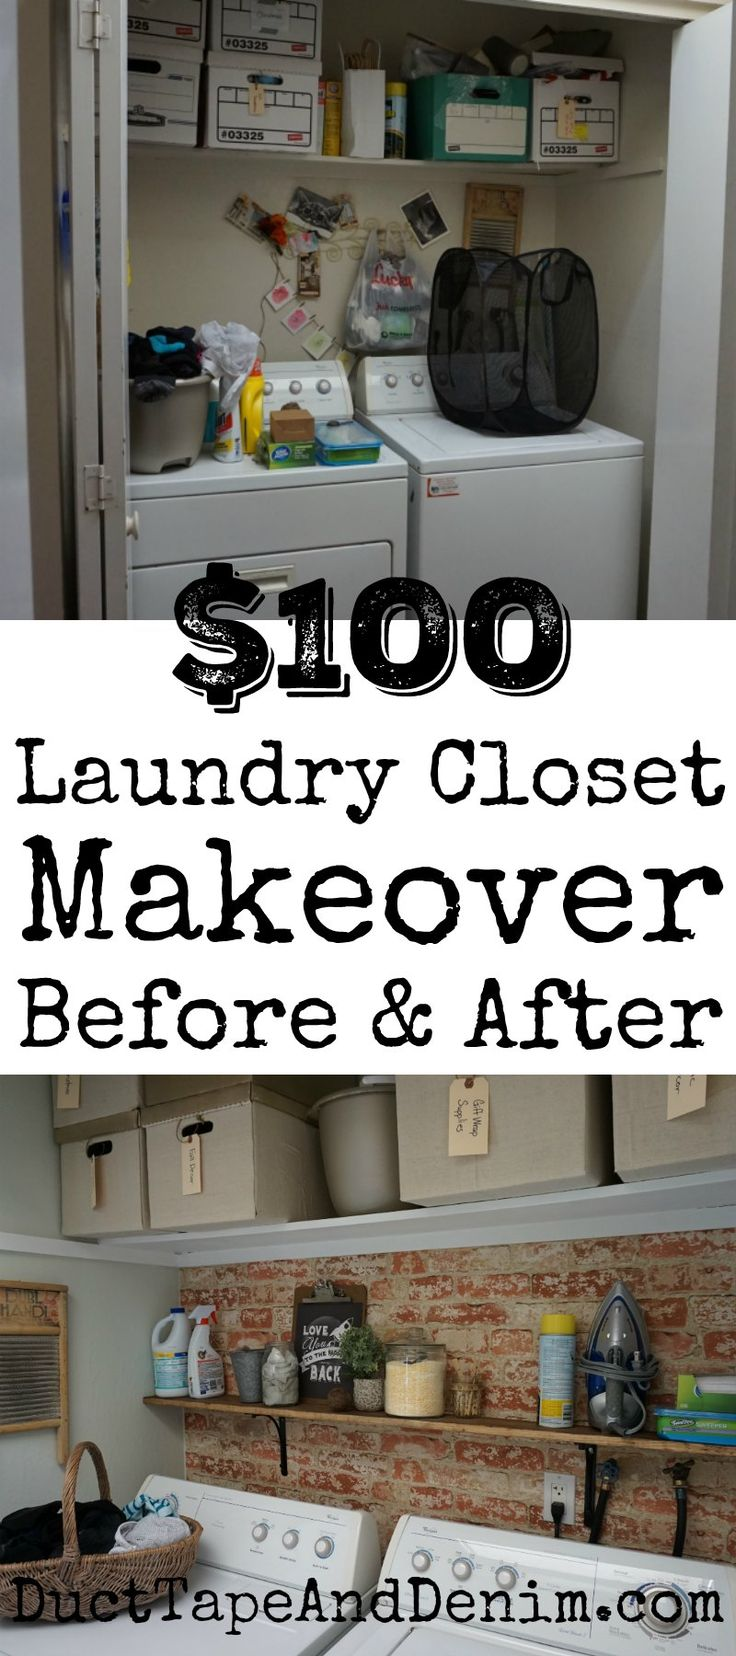 Best 25+ Laundry Closet Makeover Ideas On Pinterest | Laundry Room  Shelving, Laundry Room Shelves And Laundry Room Small Ideas